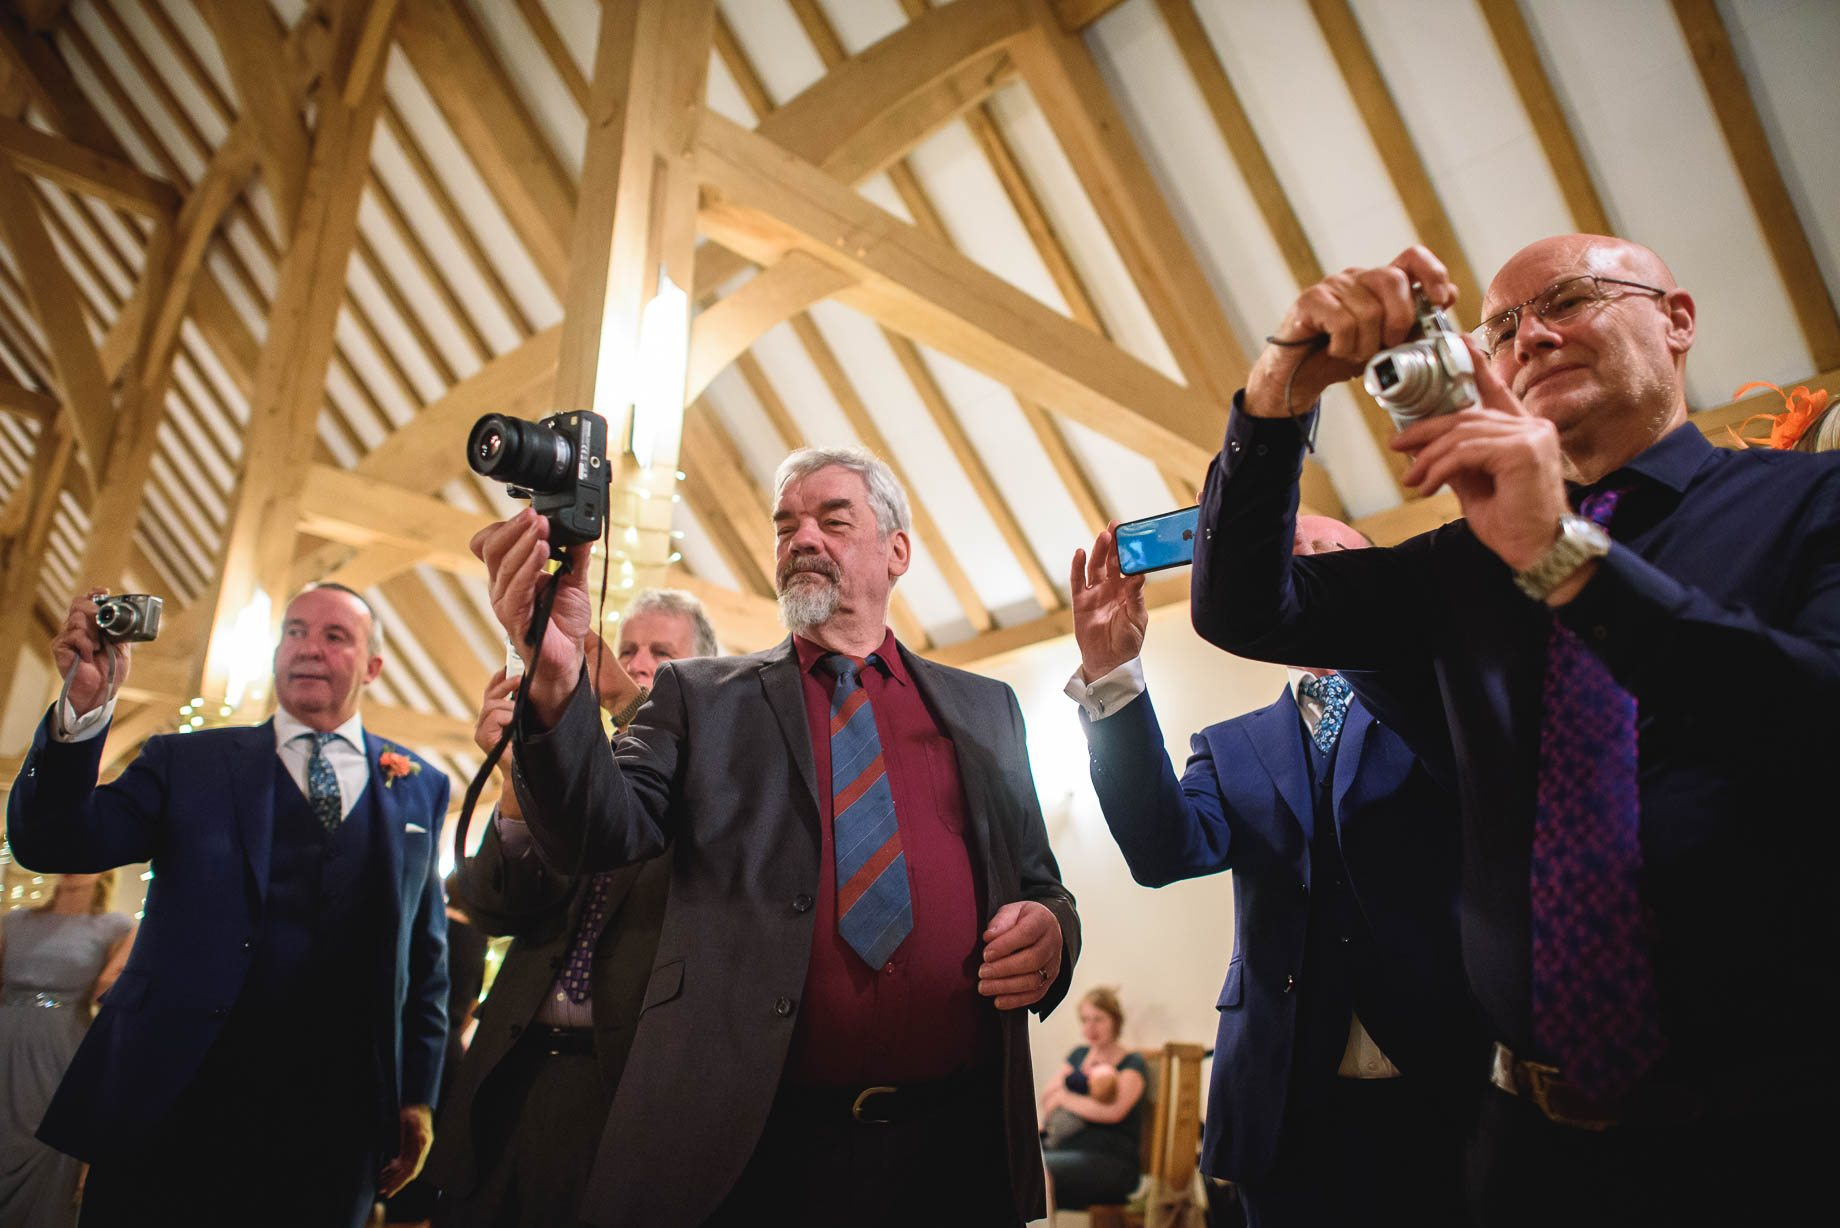 Rivervale Barn wedding photography by Guy Collier - Claire and Simon (127 of 133)